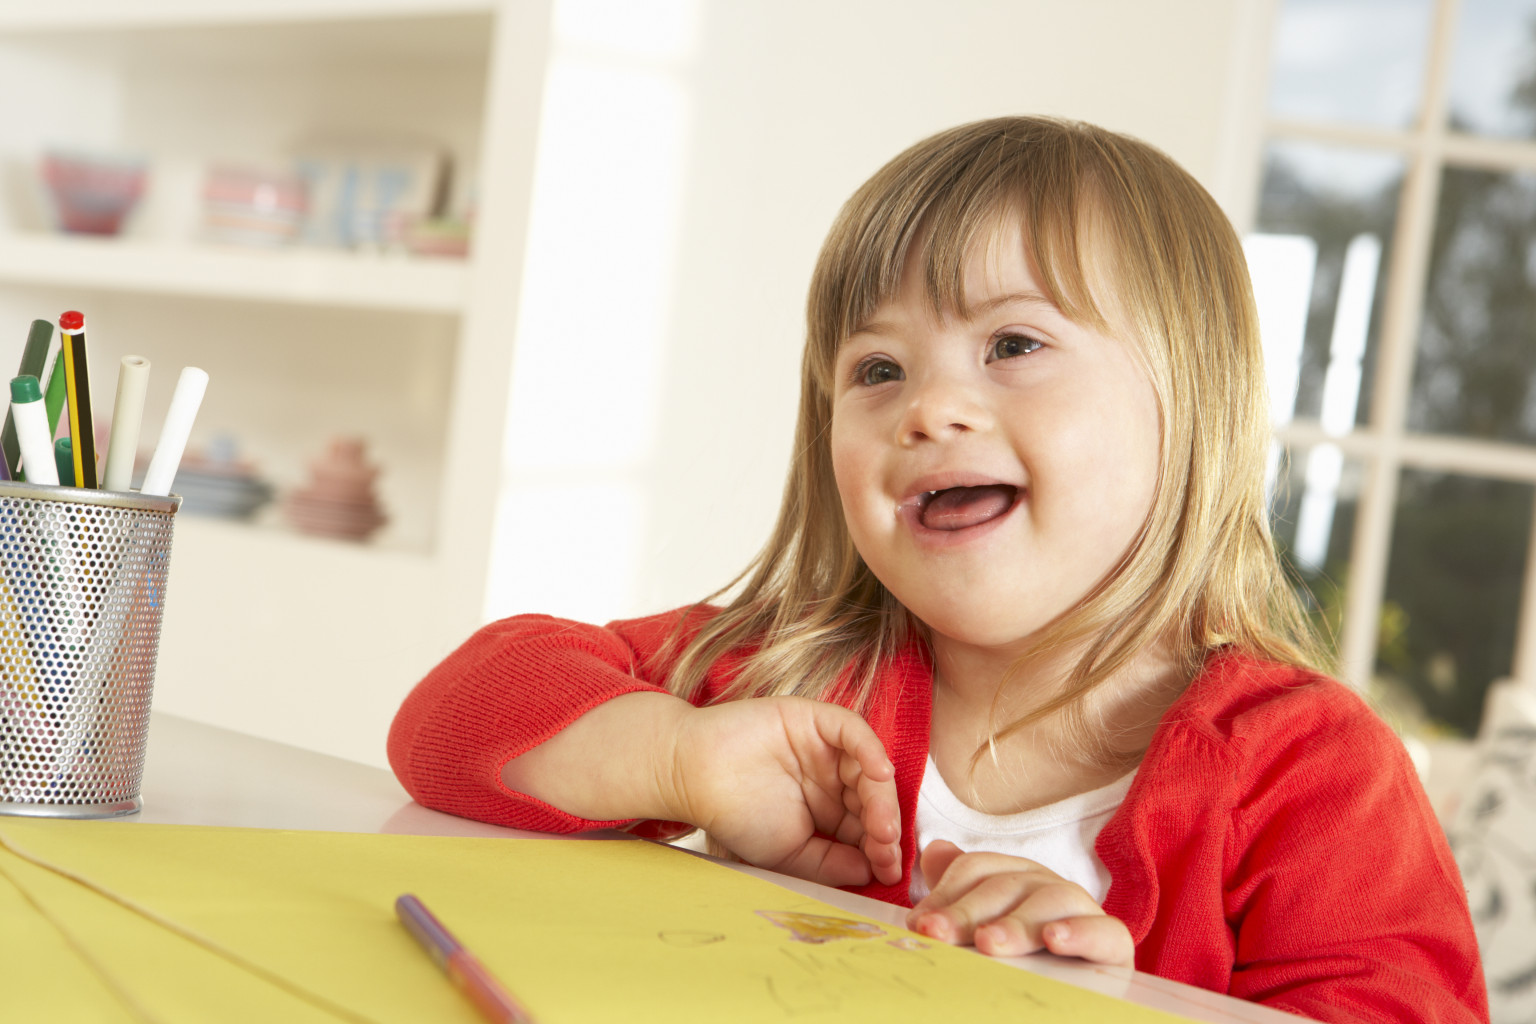 Girl with Downs Syndrome drawing